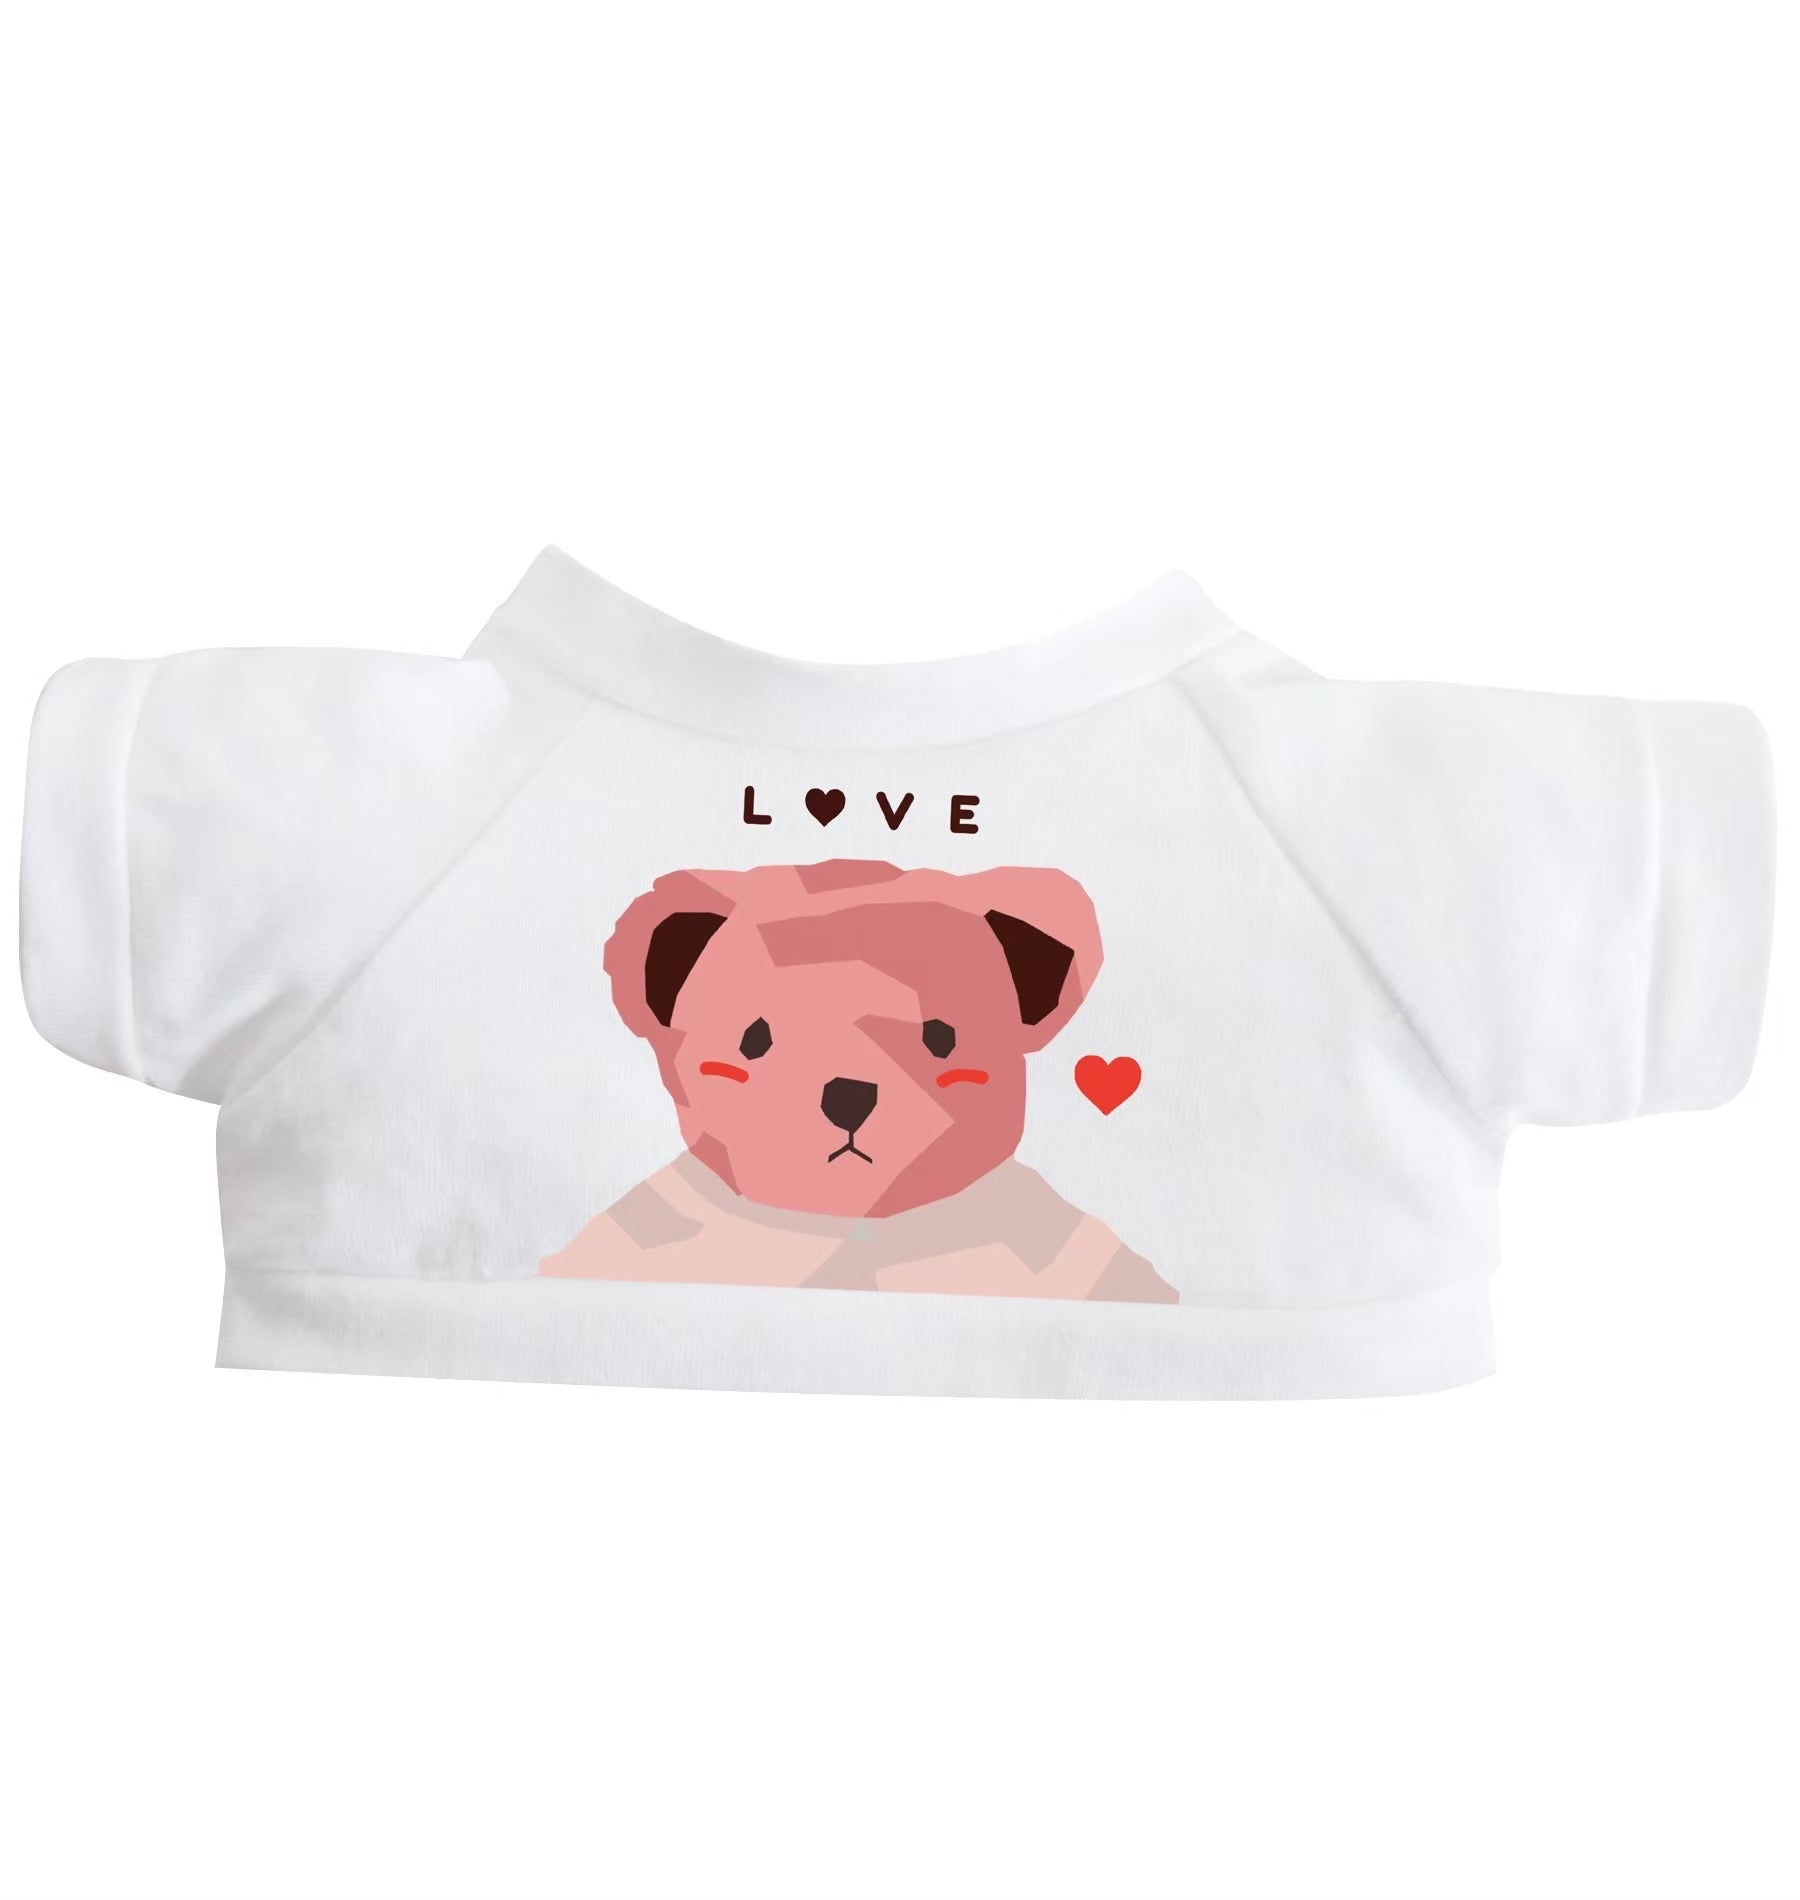 T-SHIRT LOVE 10 INCHI